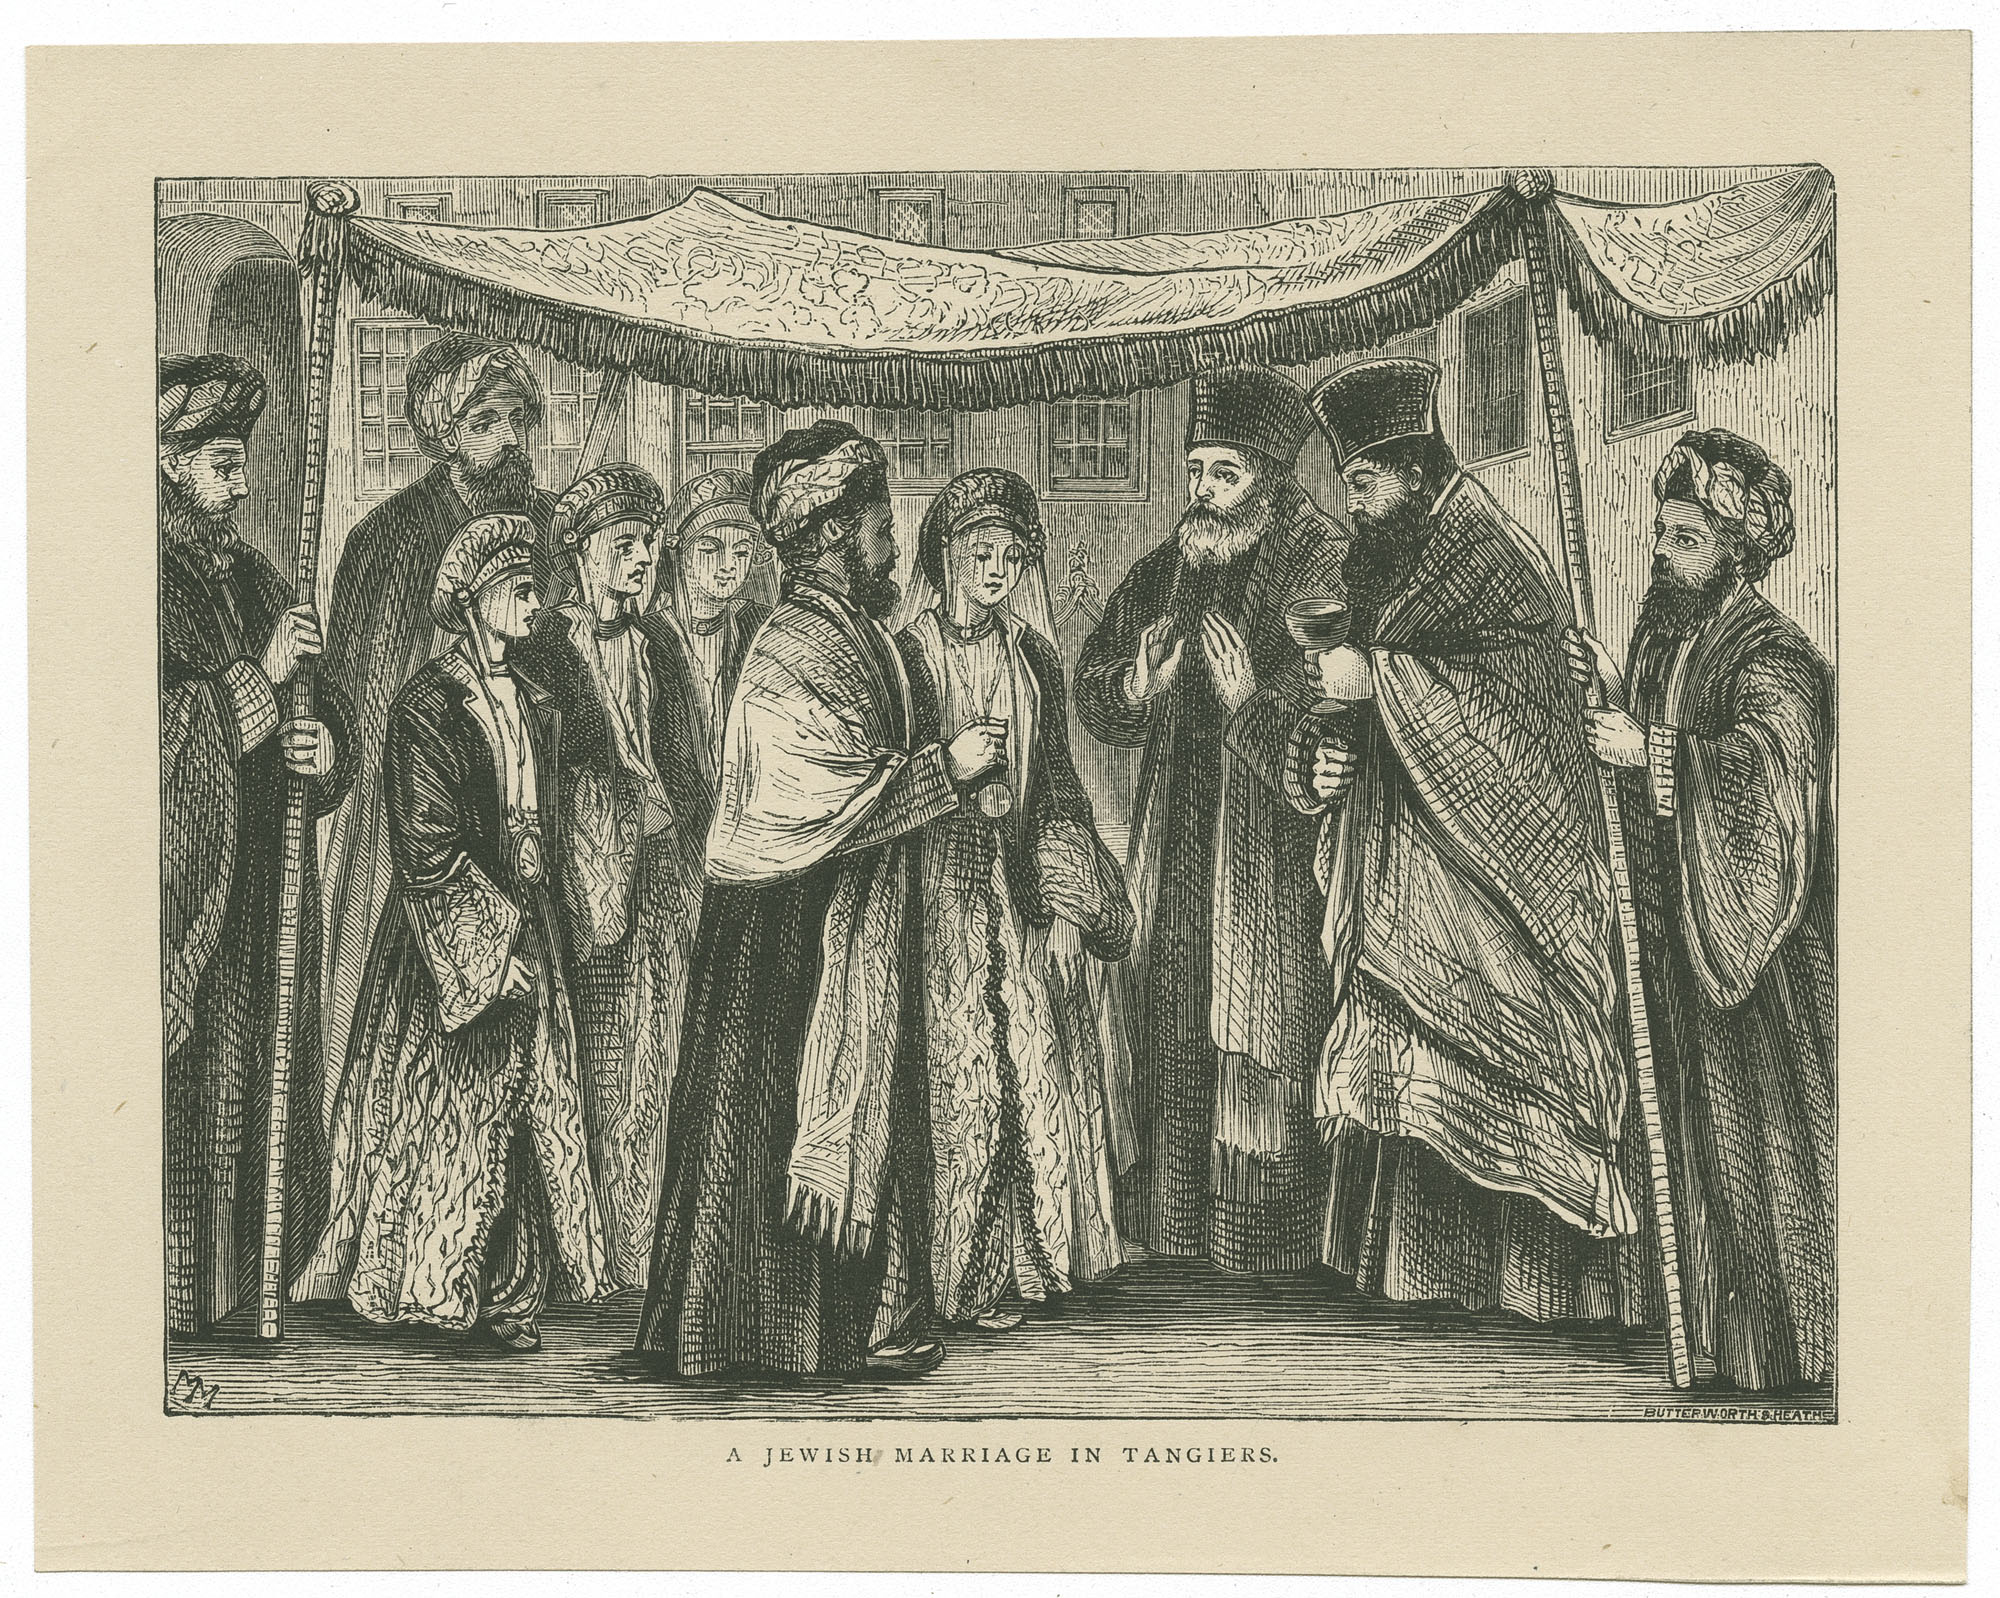 A Jewish marriage in Tangiers